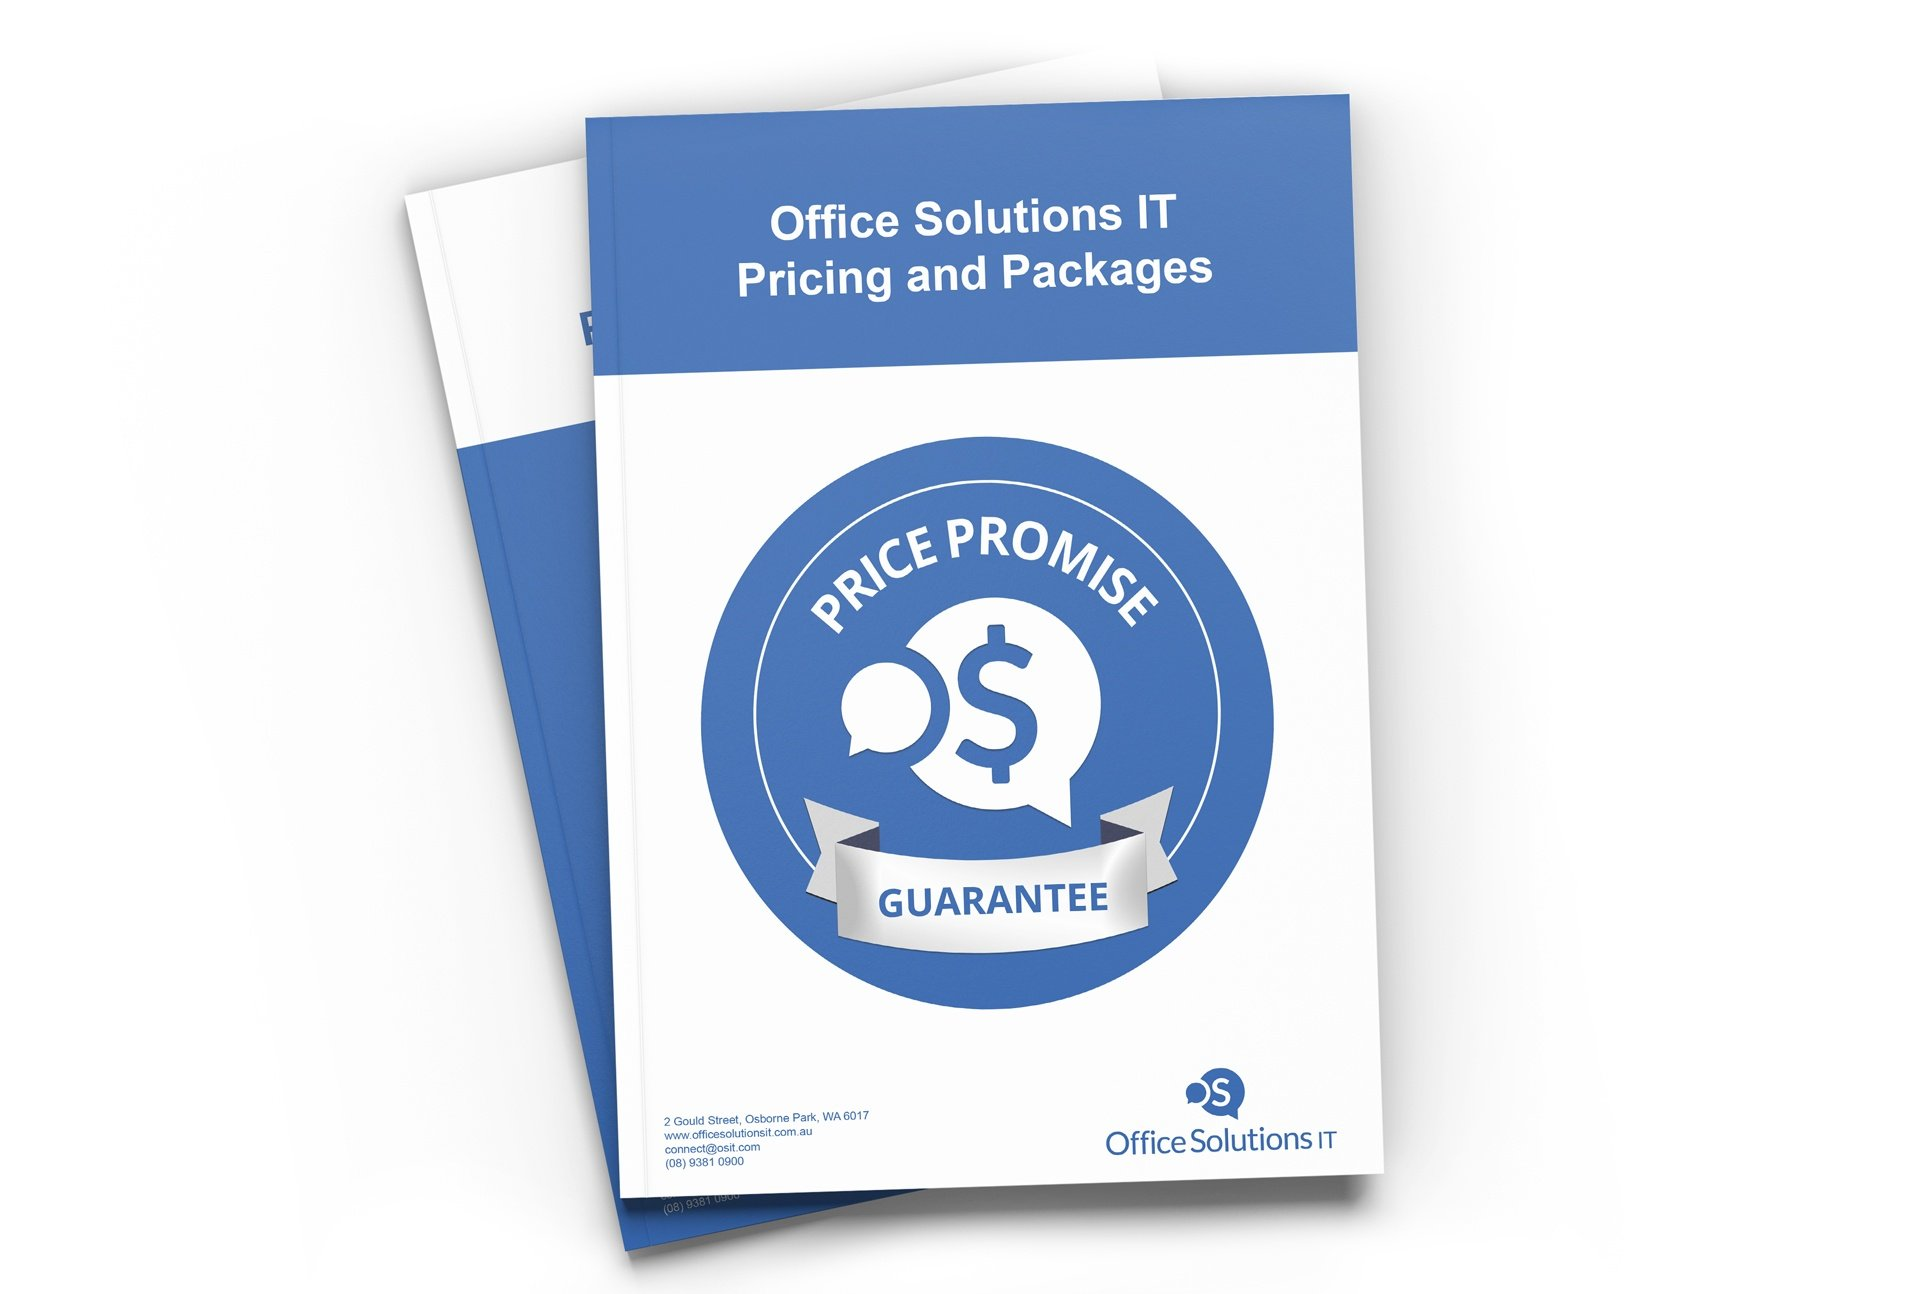 Office-Solutions-IT-Price-Promise.jpg